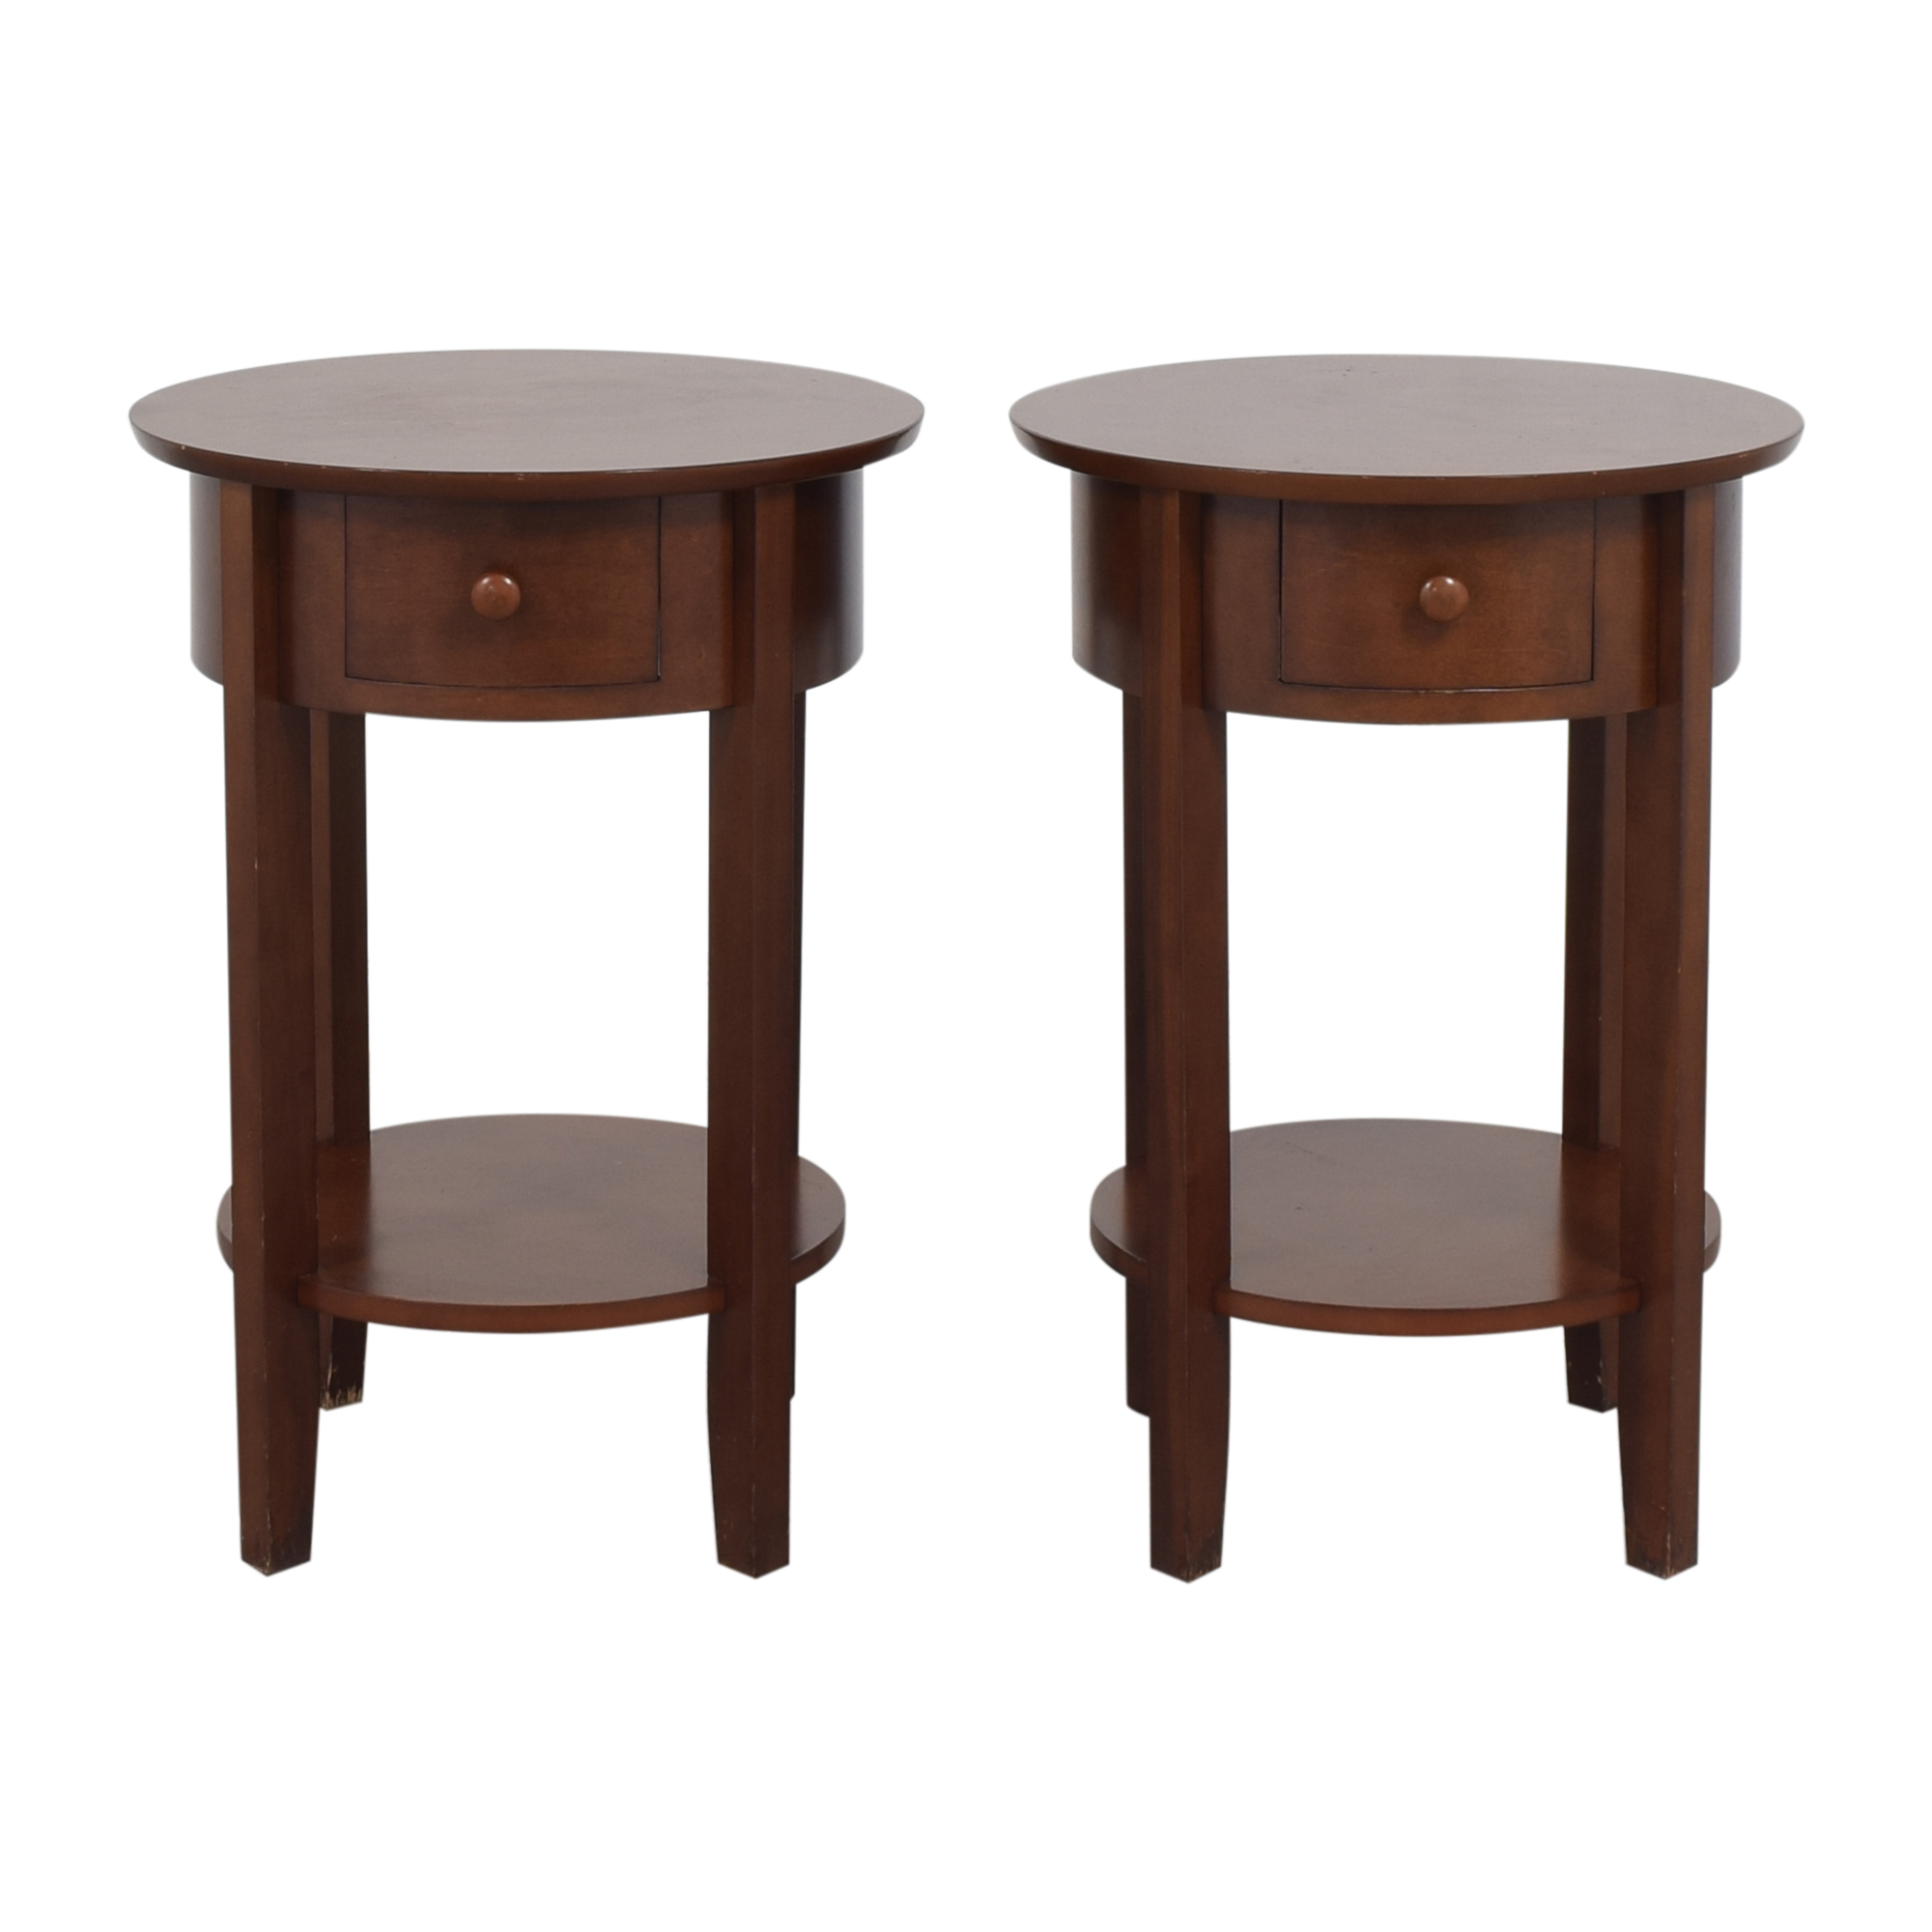 Pottery Barn Pottery Barn Round Top End Tables discount